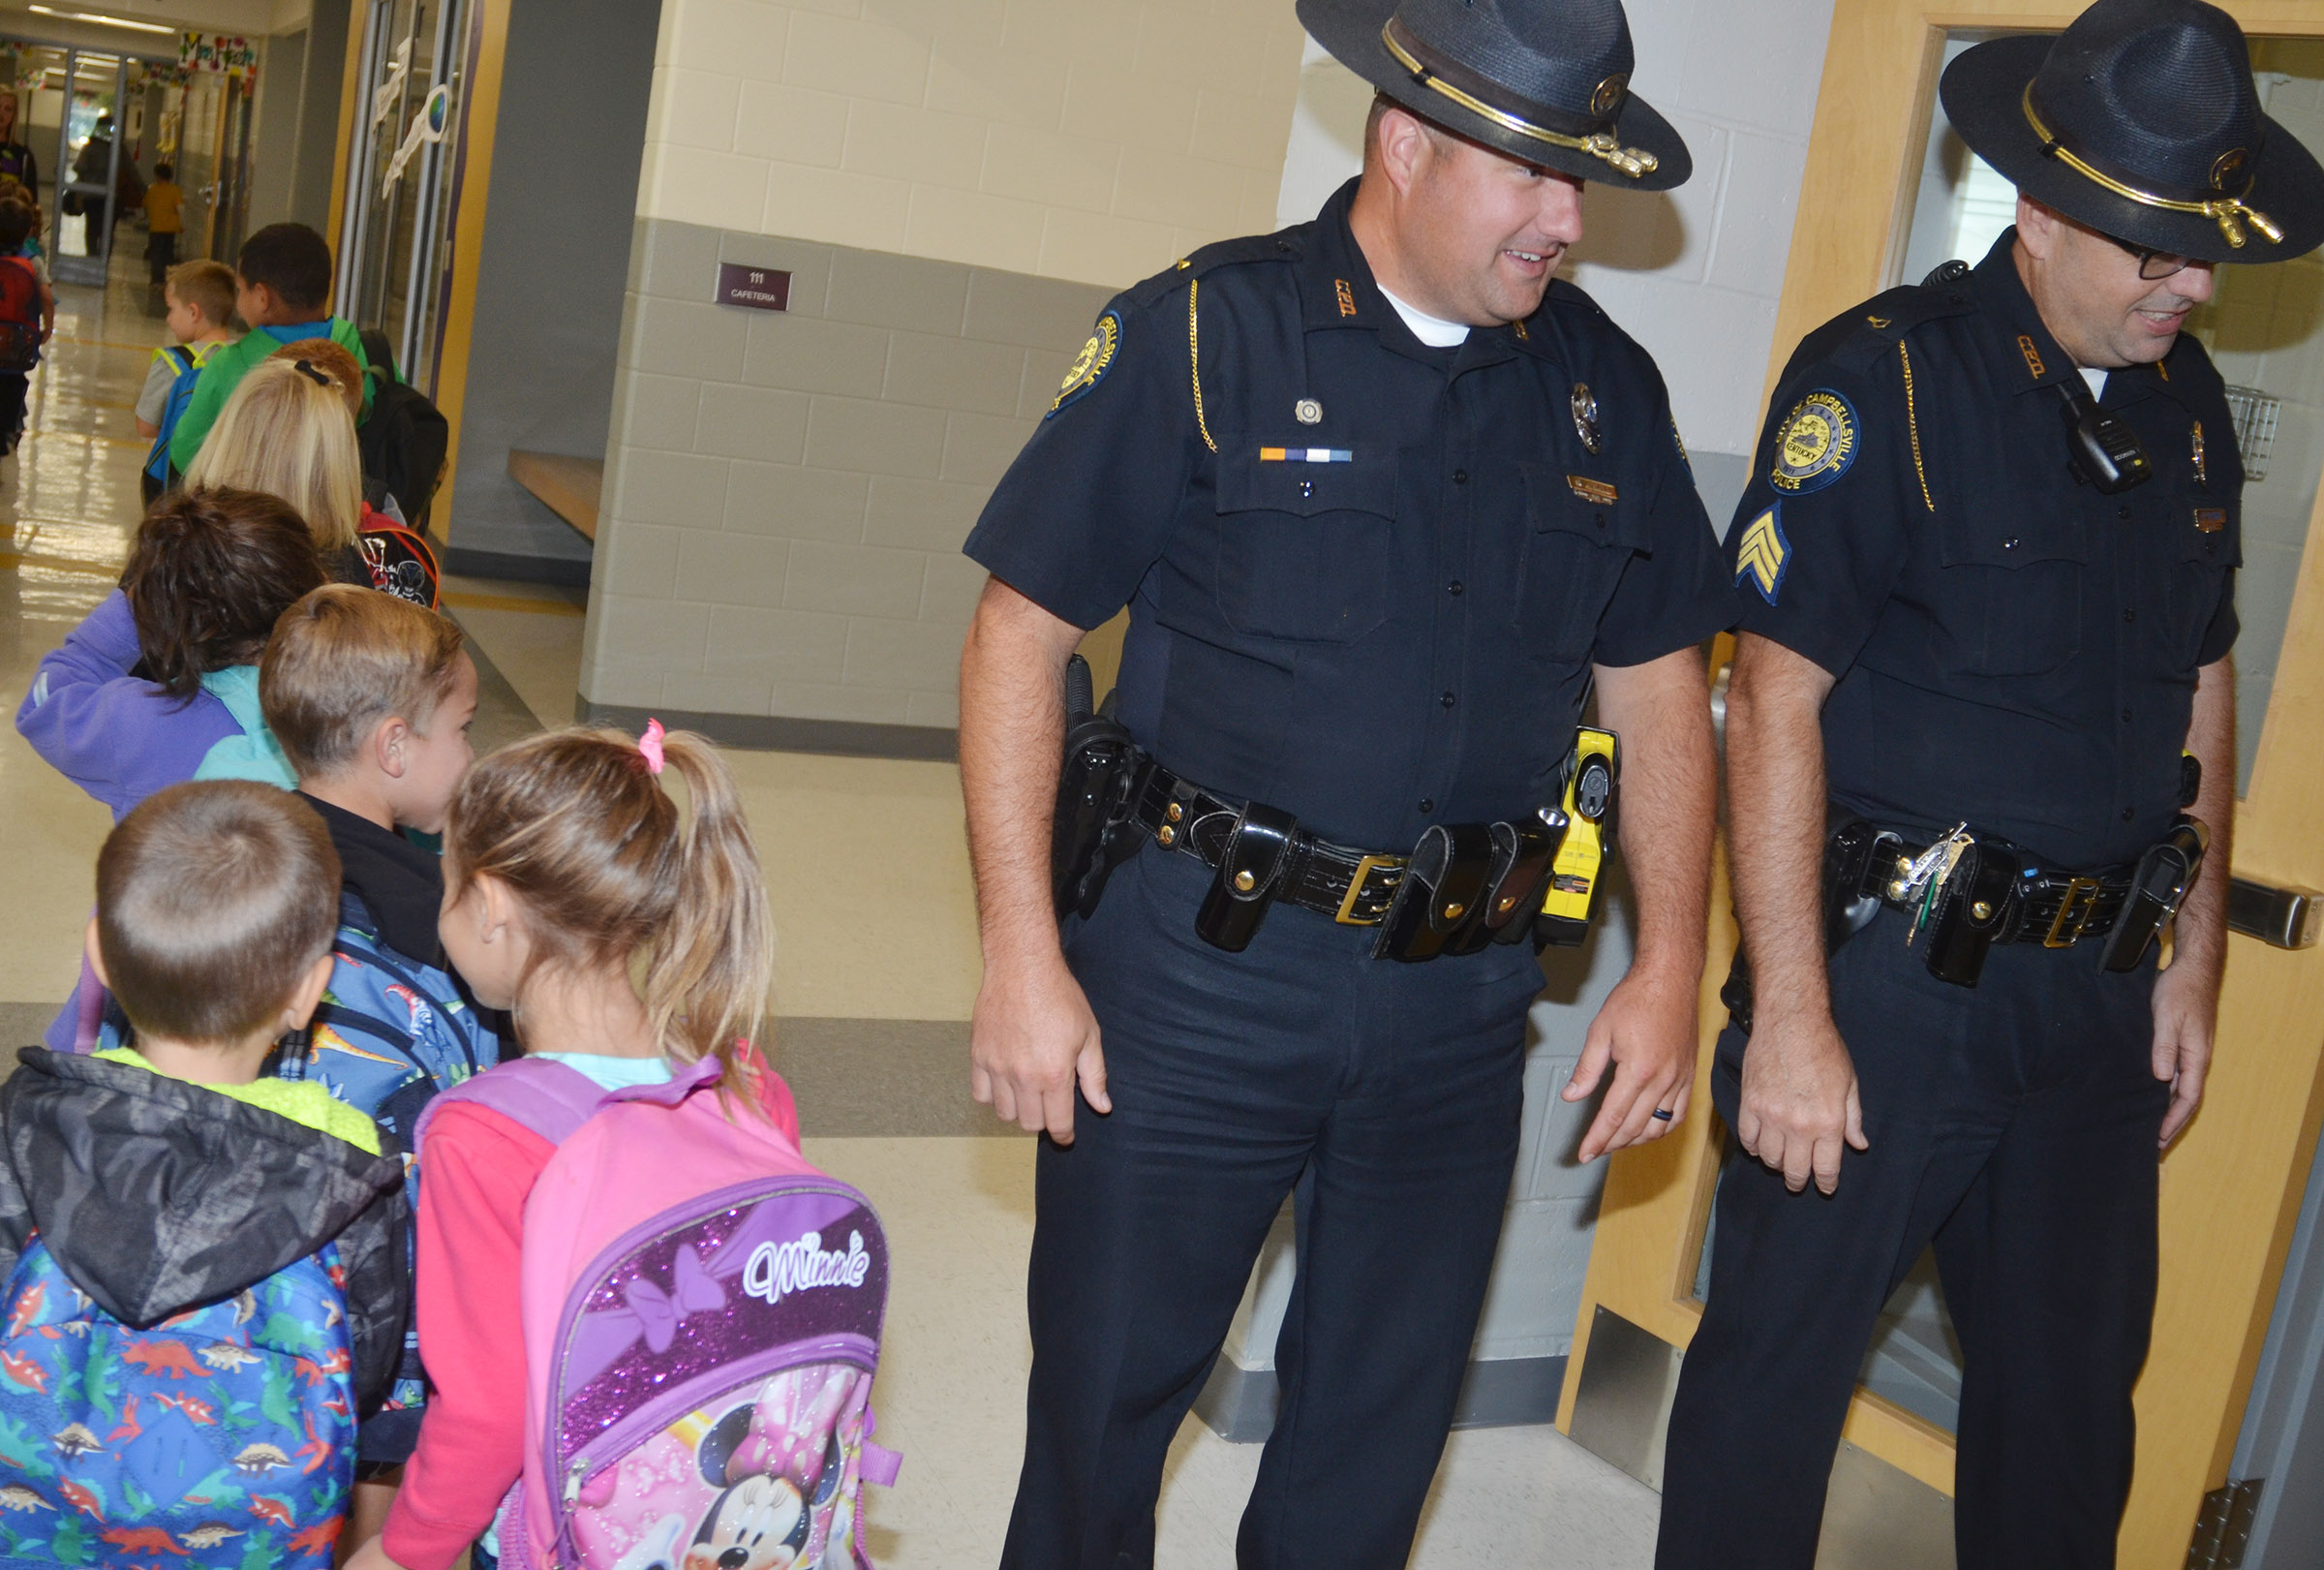 Campbellsville Police officers Ryan Jewell, at left, and David Tucker greet CES students as they walk to their classrooms.